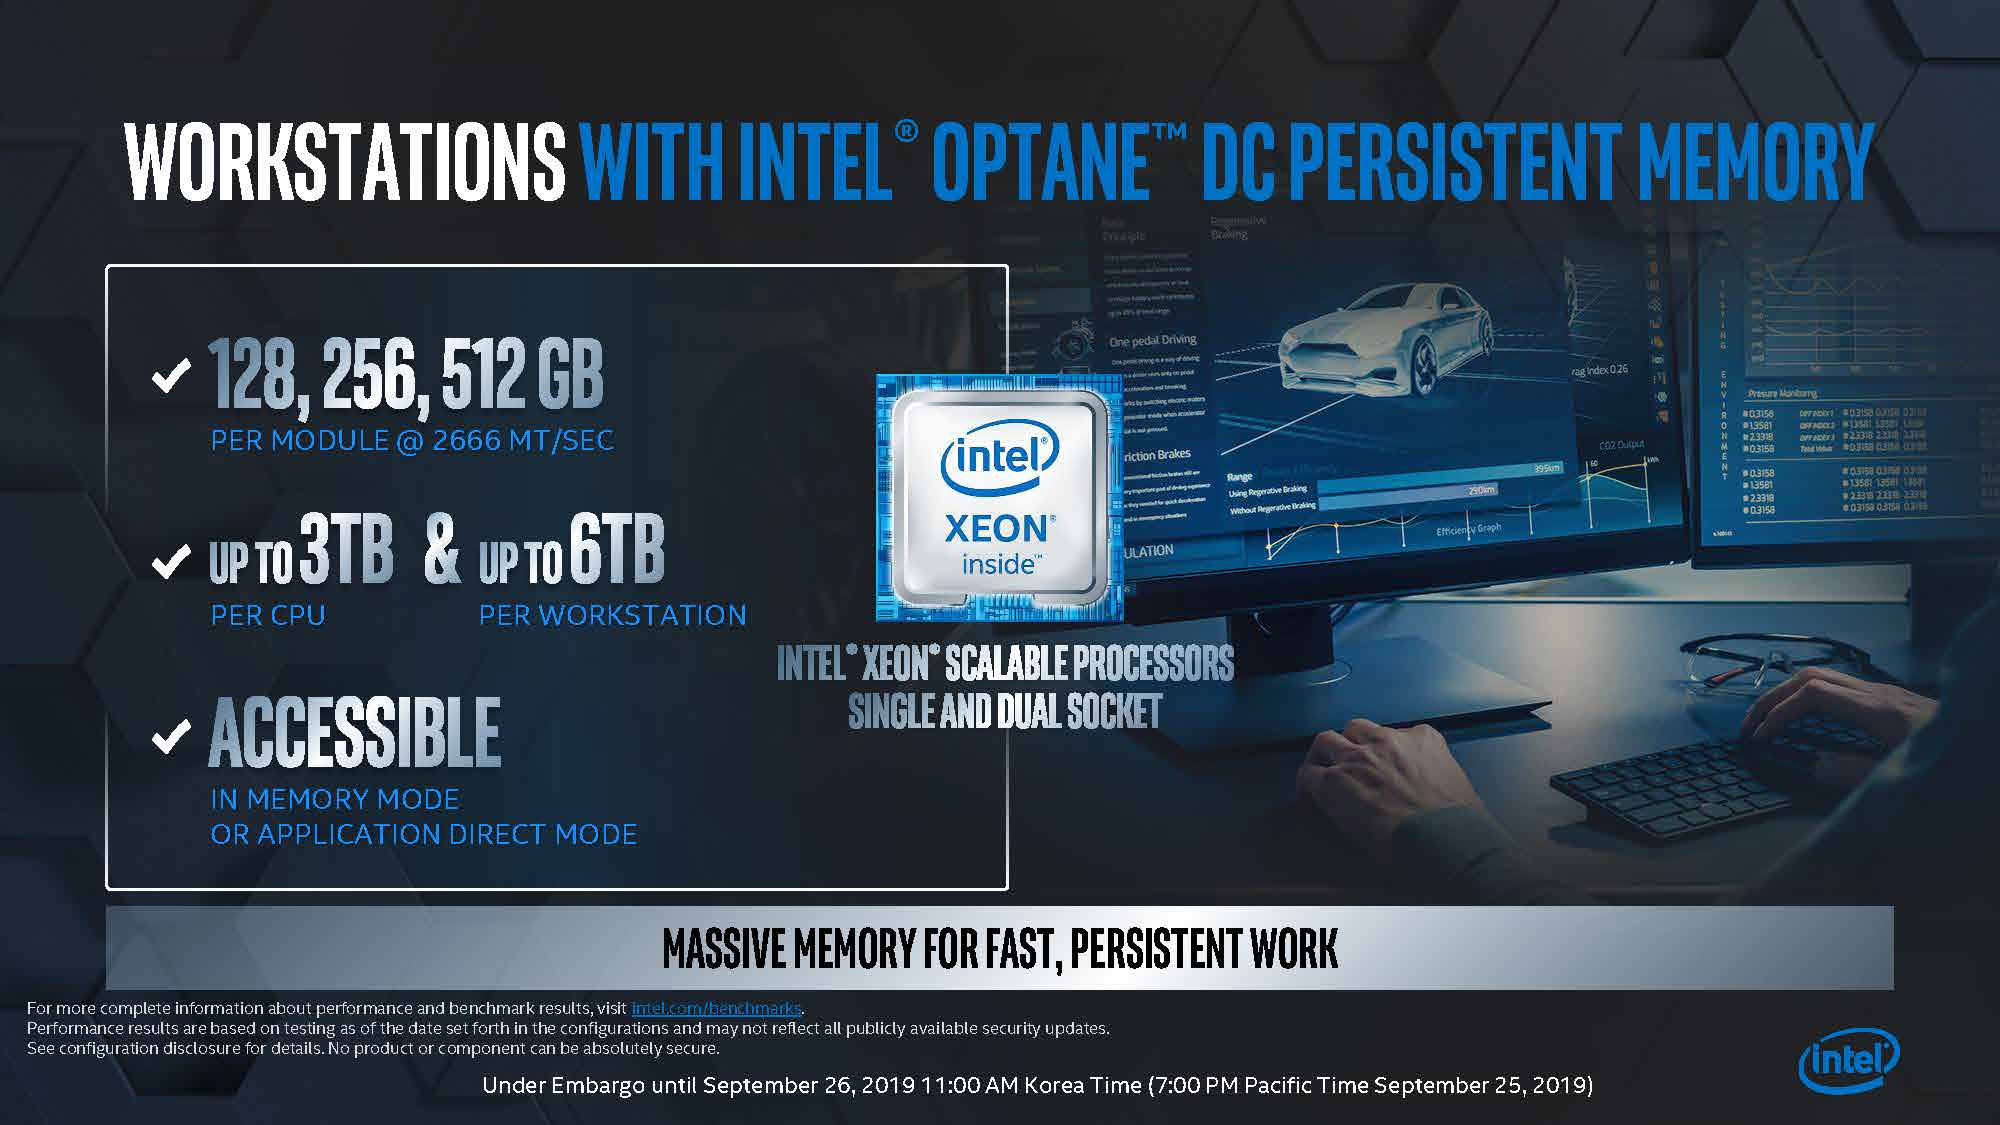 Intel Memory Storage Day 2019 Workstations